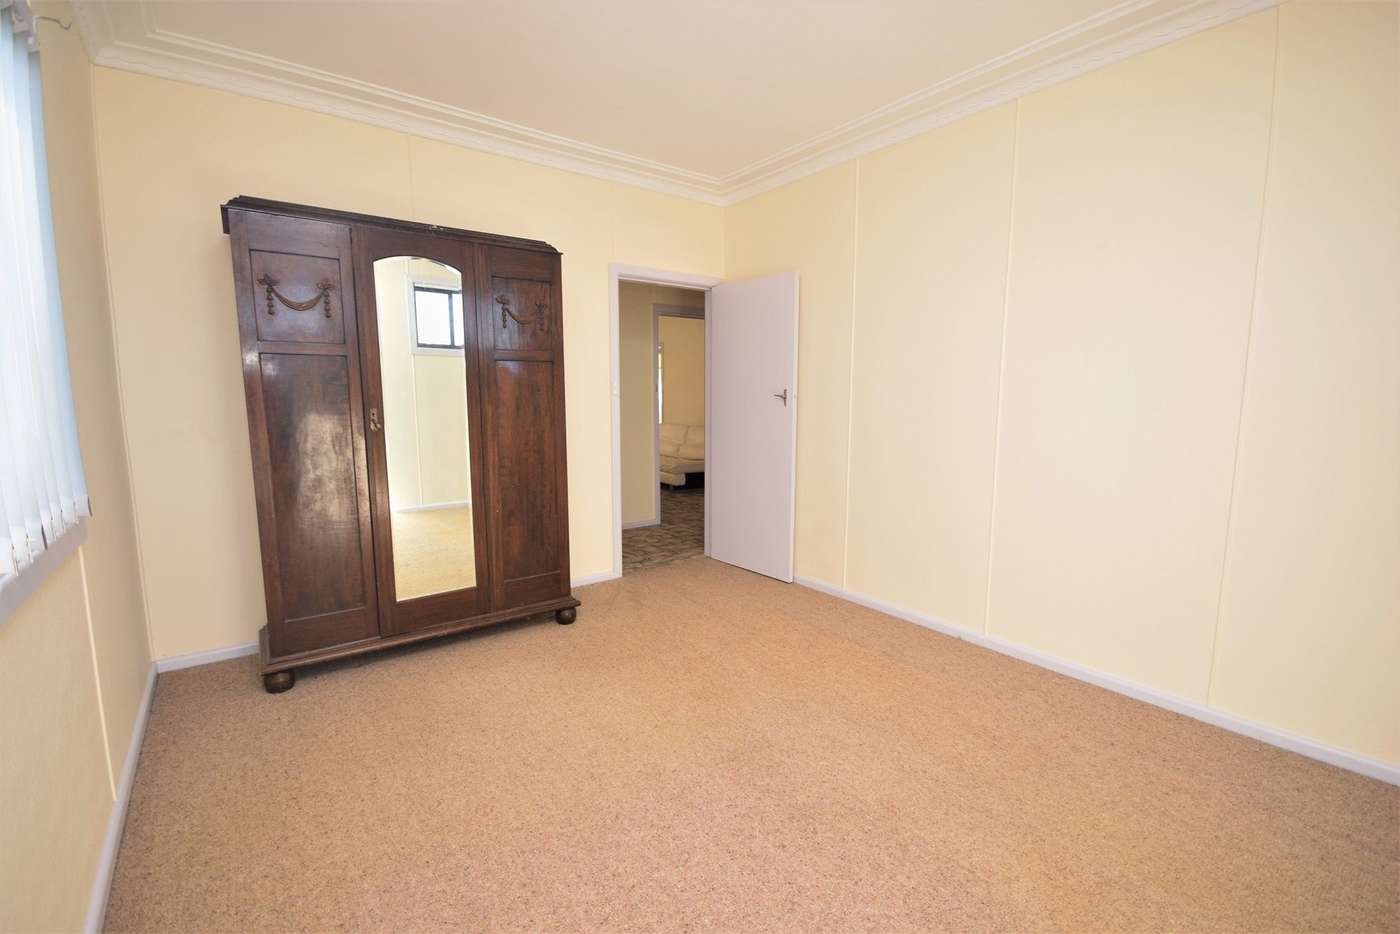 Sixth view of Homely house listing, 33 Lee Street, Nambucca Heads NSW 2448